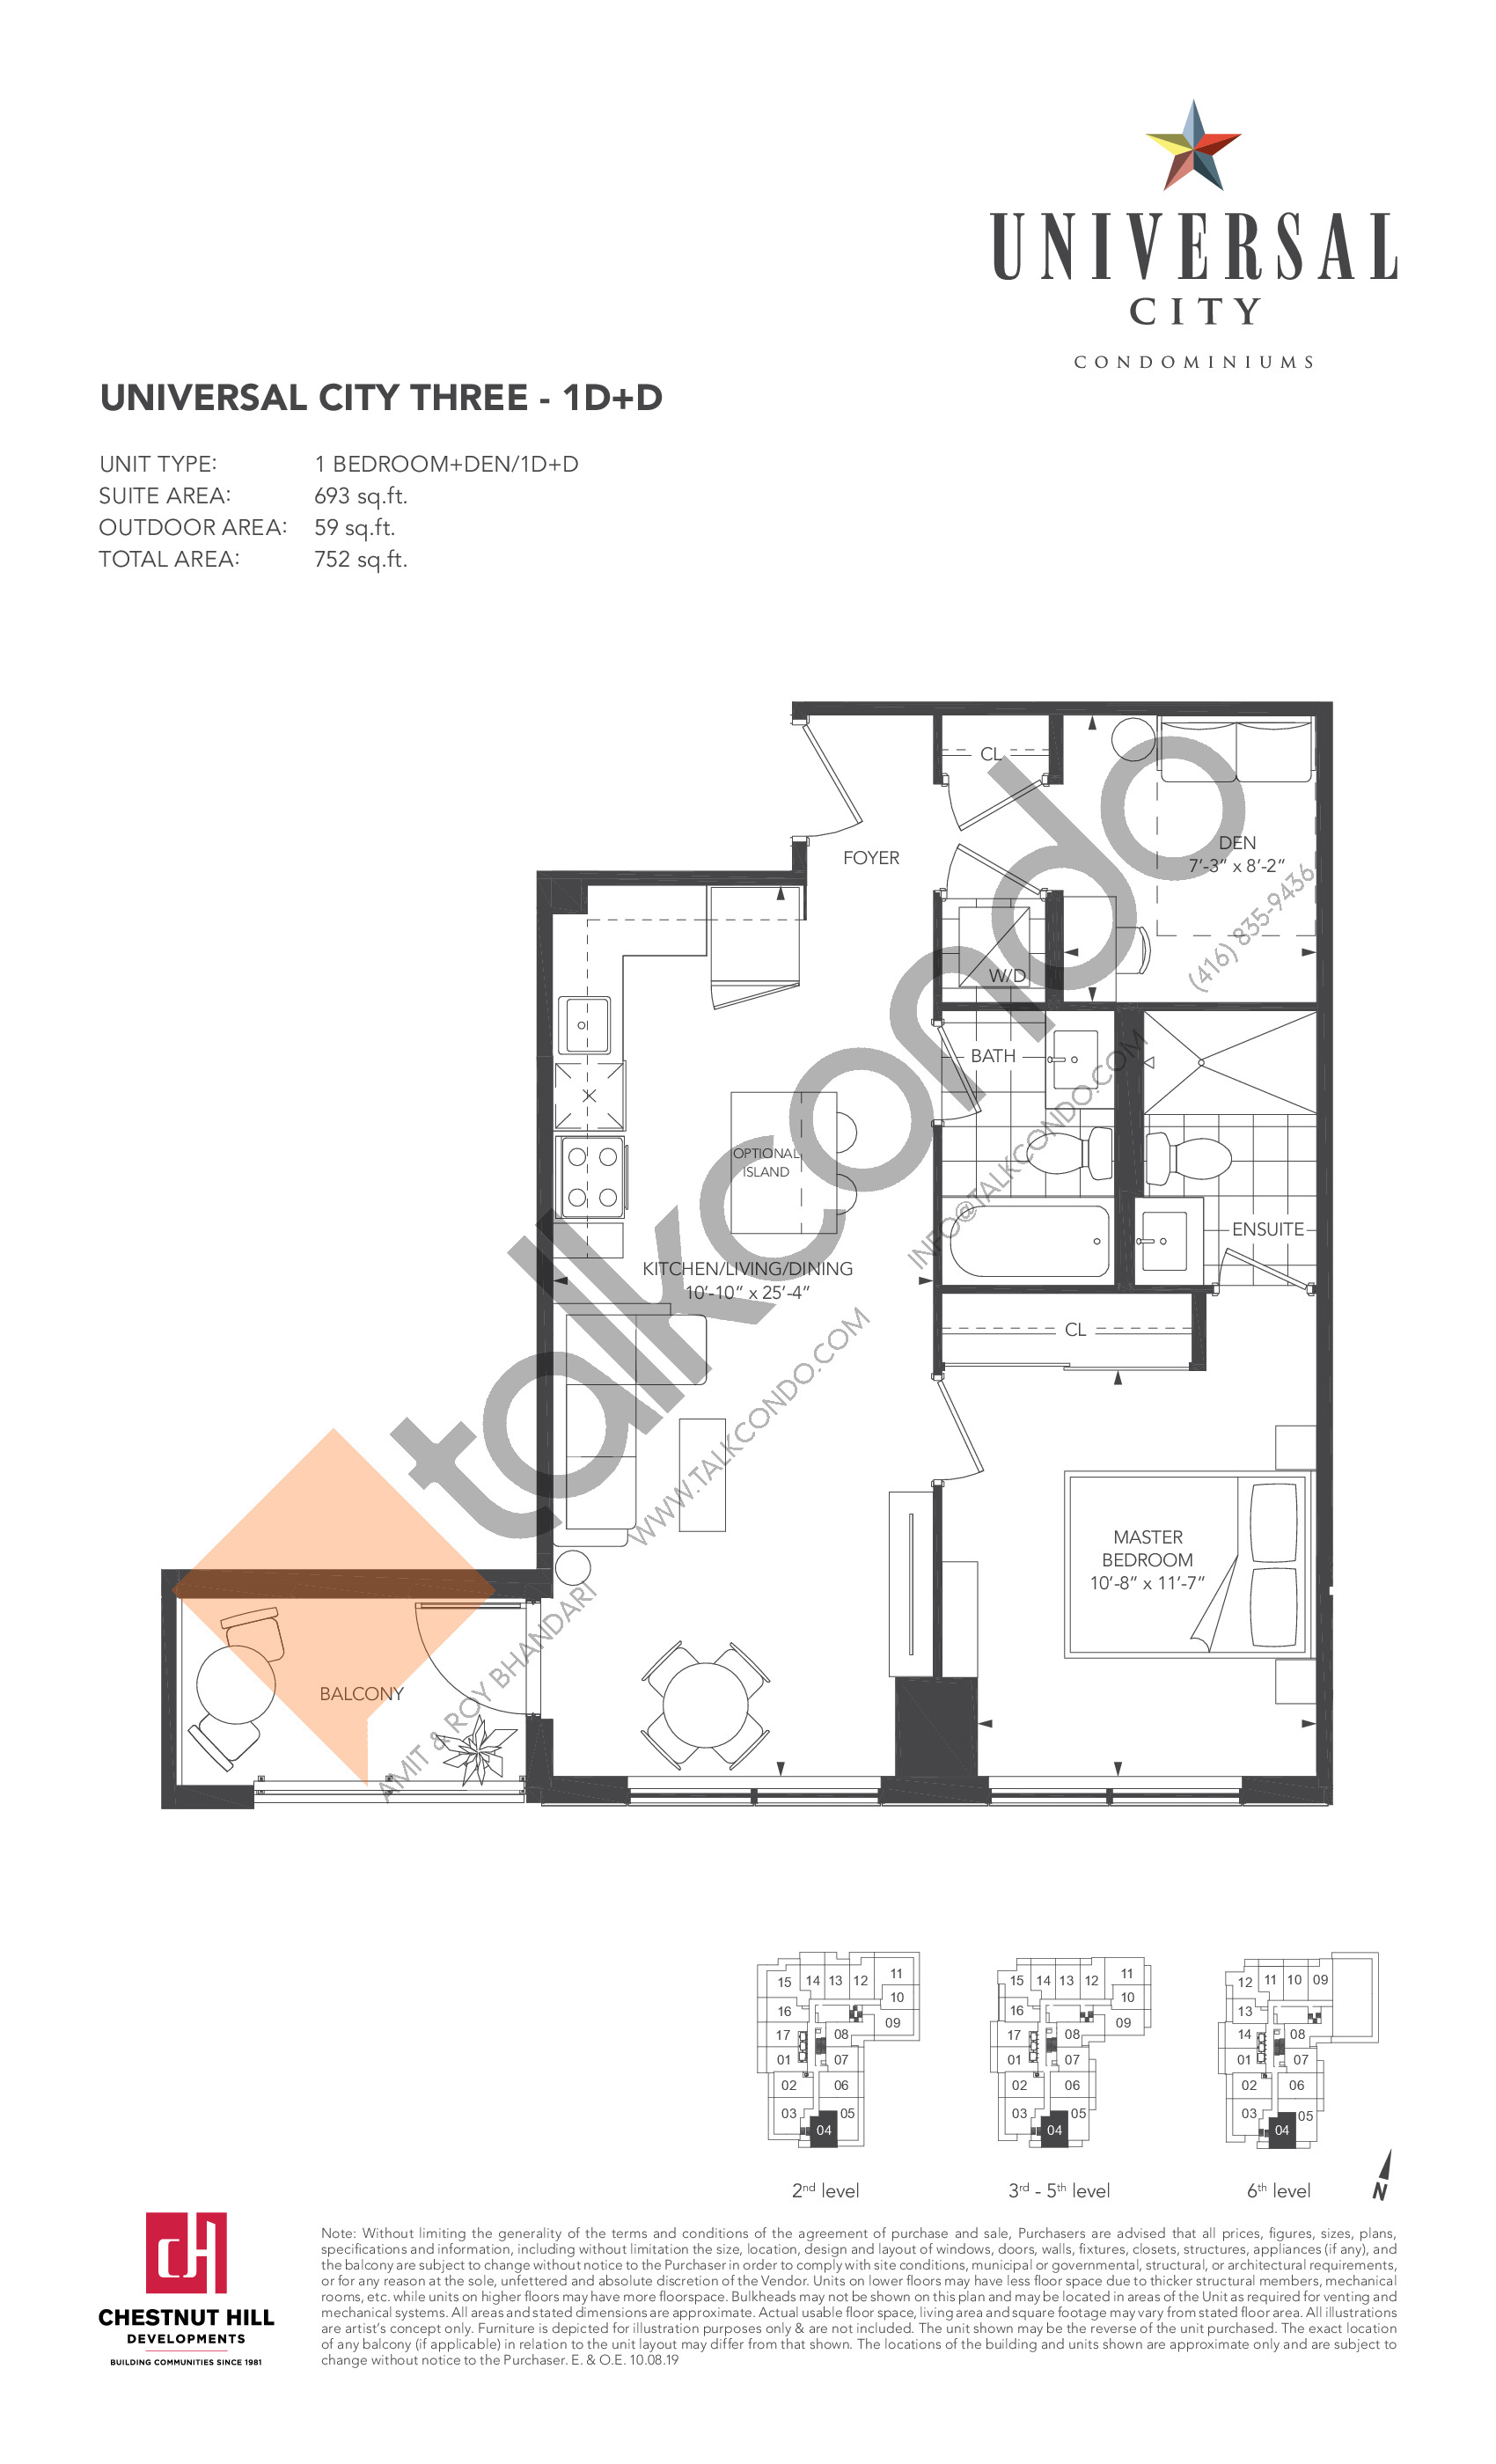 1D+D Floor Plan at Universal City Condos - Phase 3 - 693 sq.ft